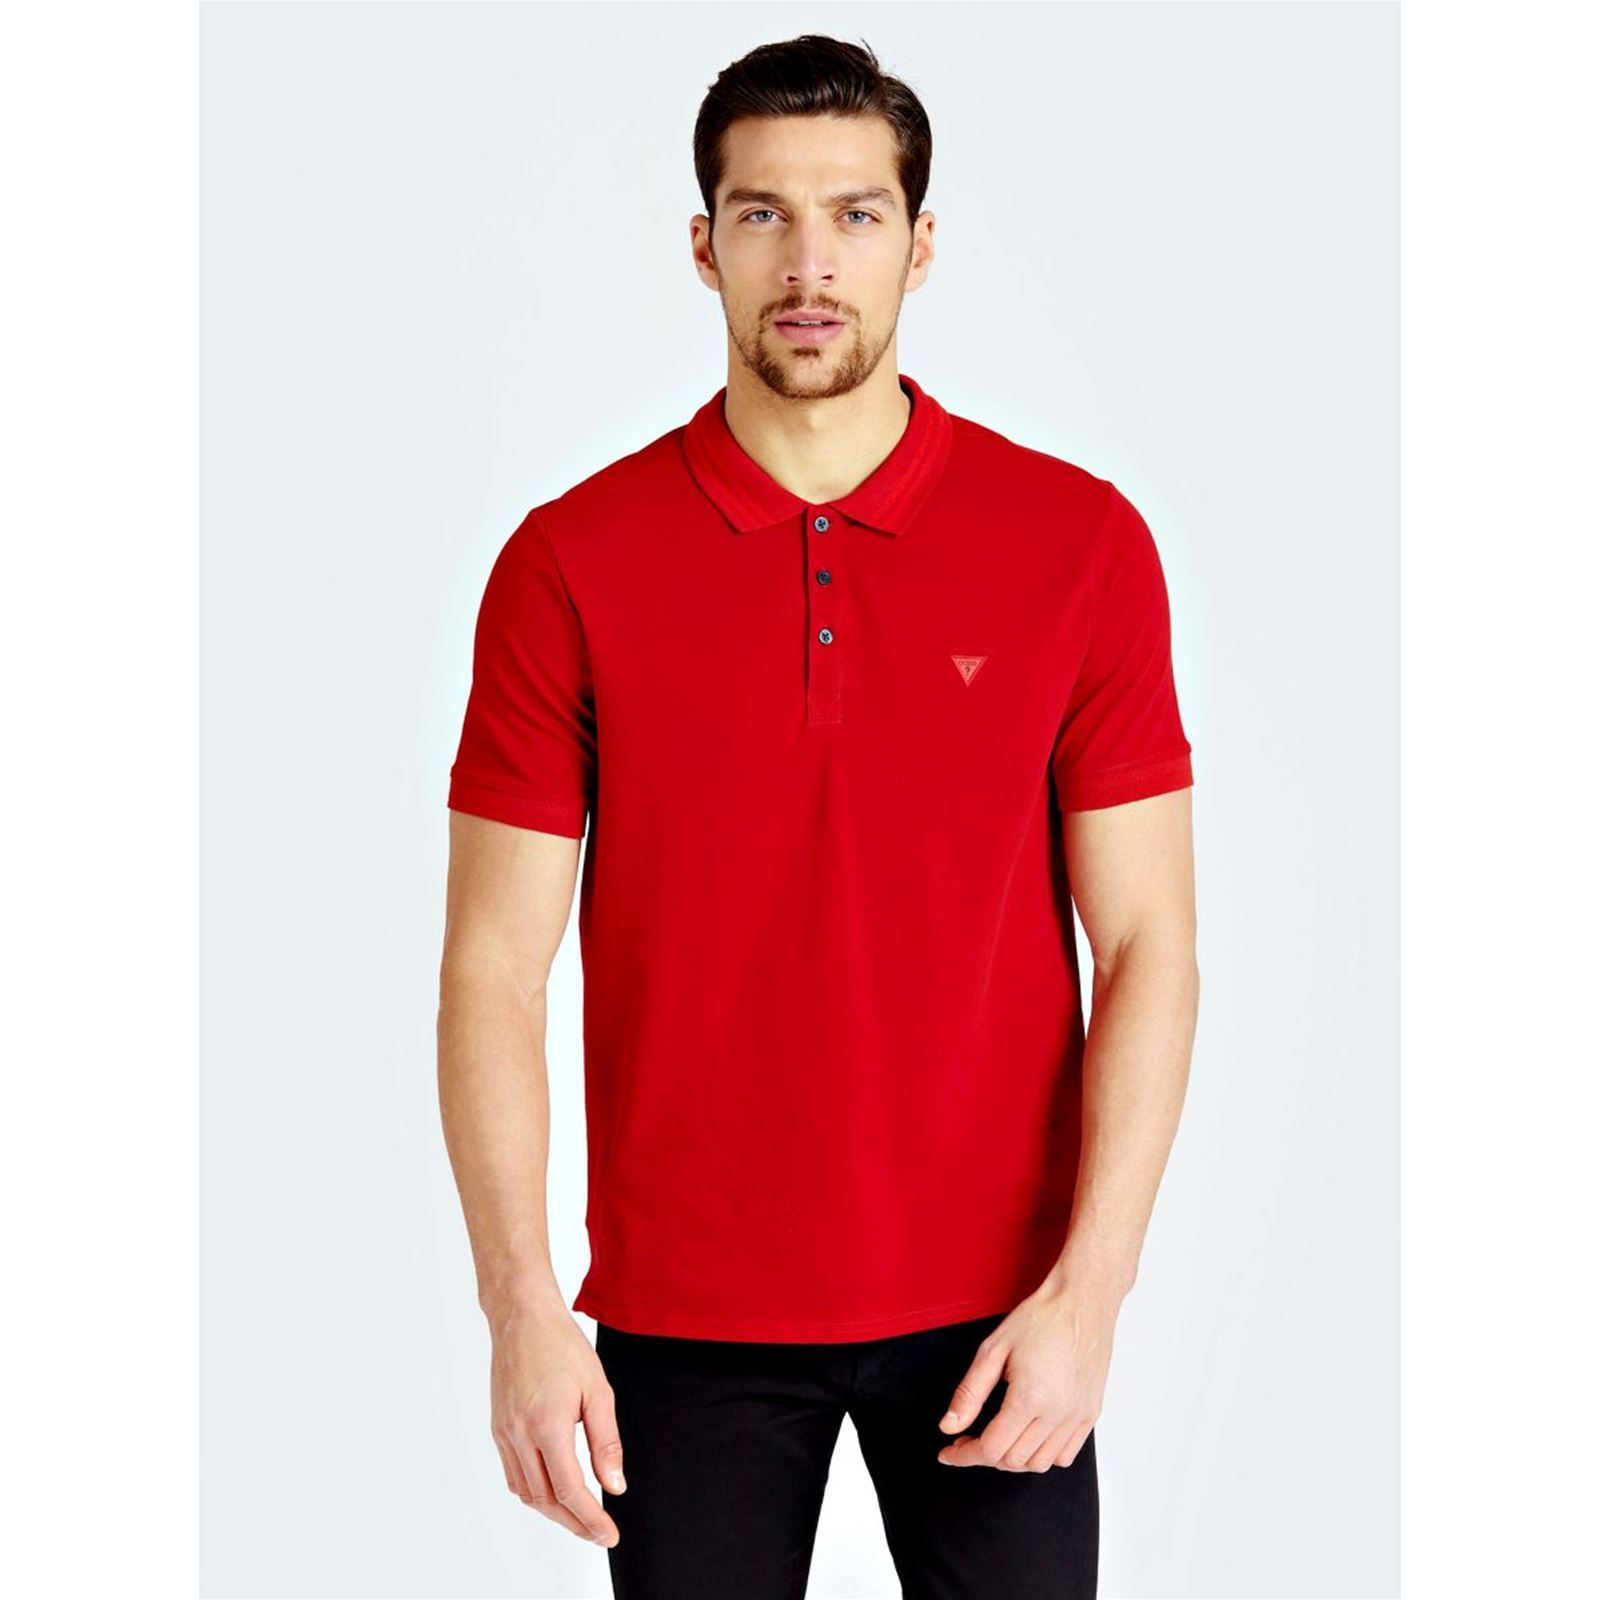 Polo Guess Guess Rouge Courtes Manches Rouge Courtes Guess Manches Polo UxwPZwq